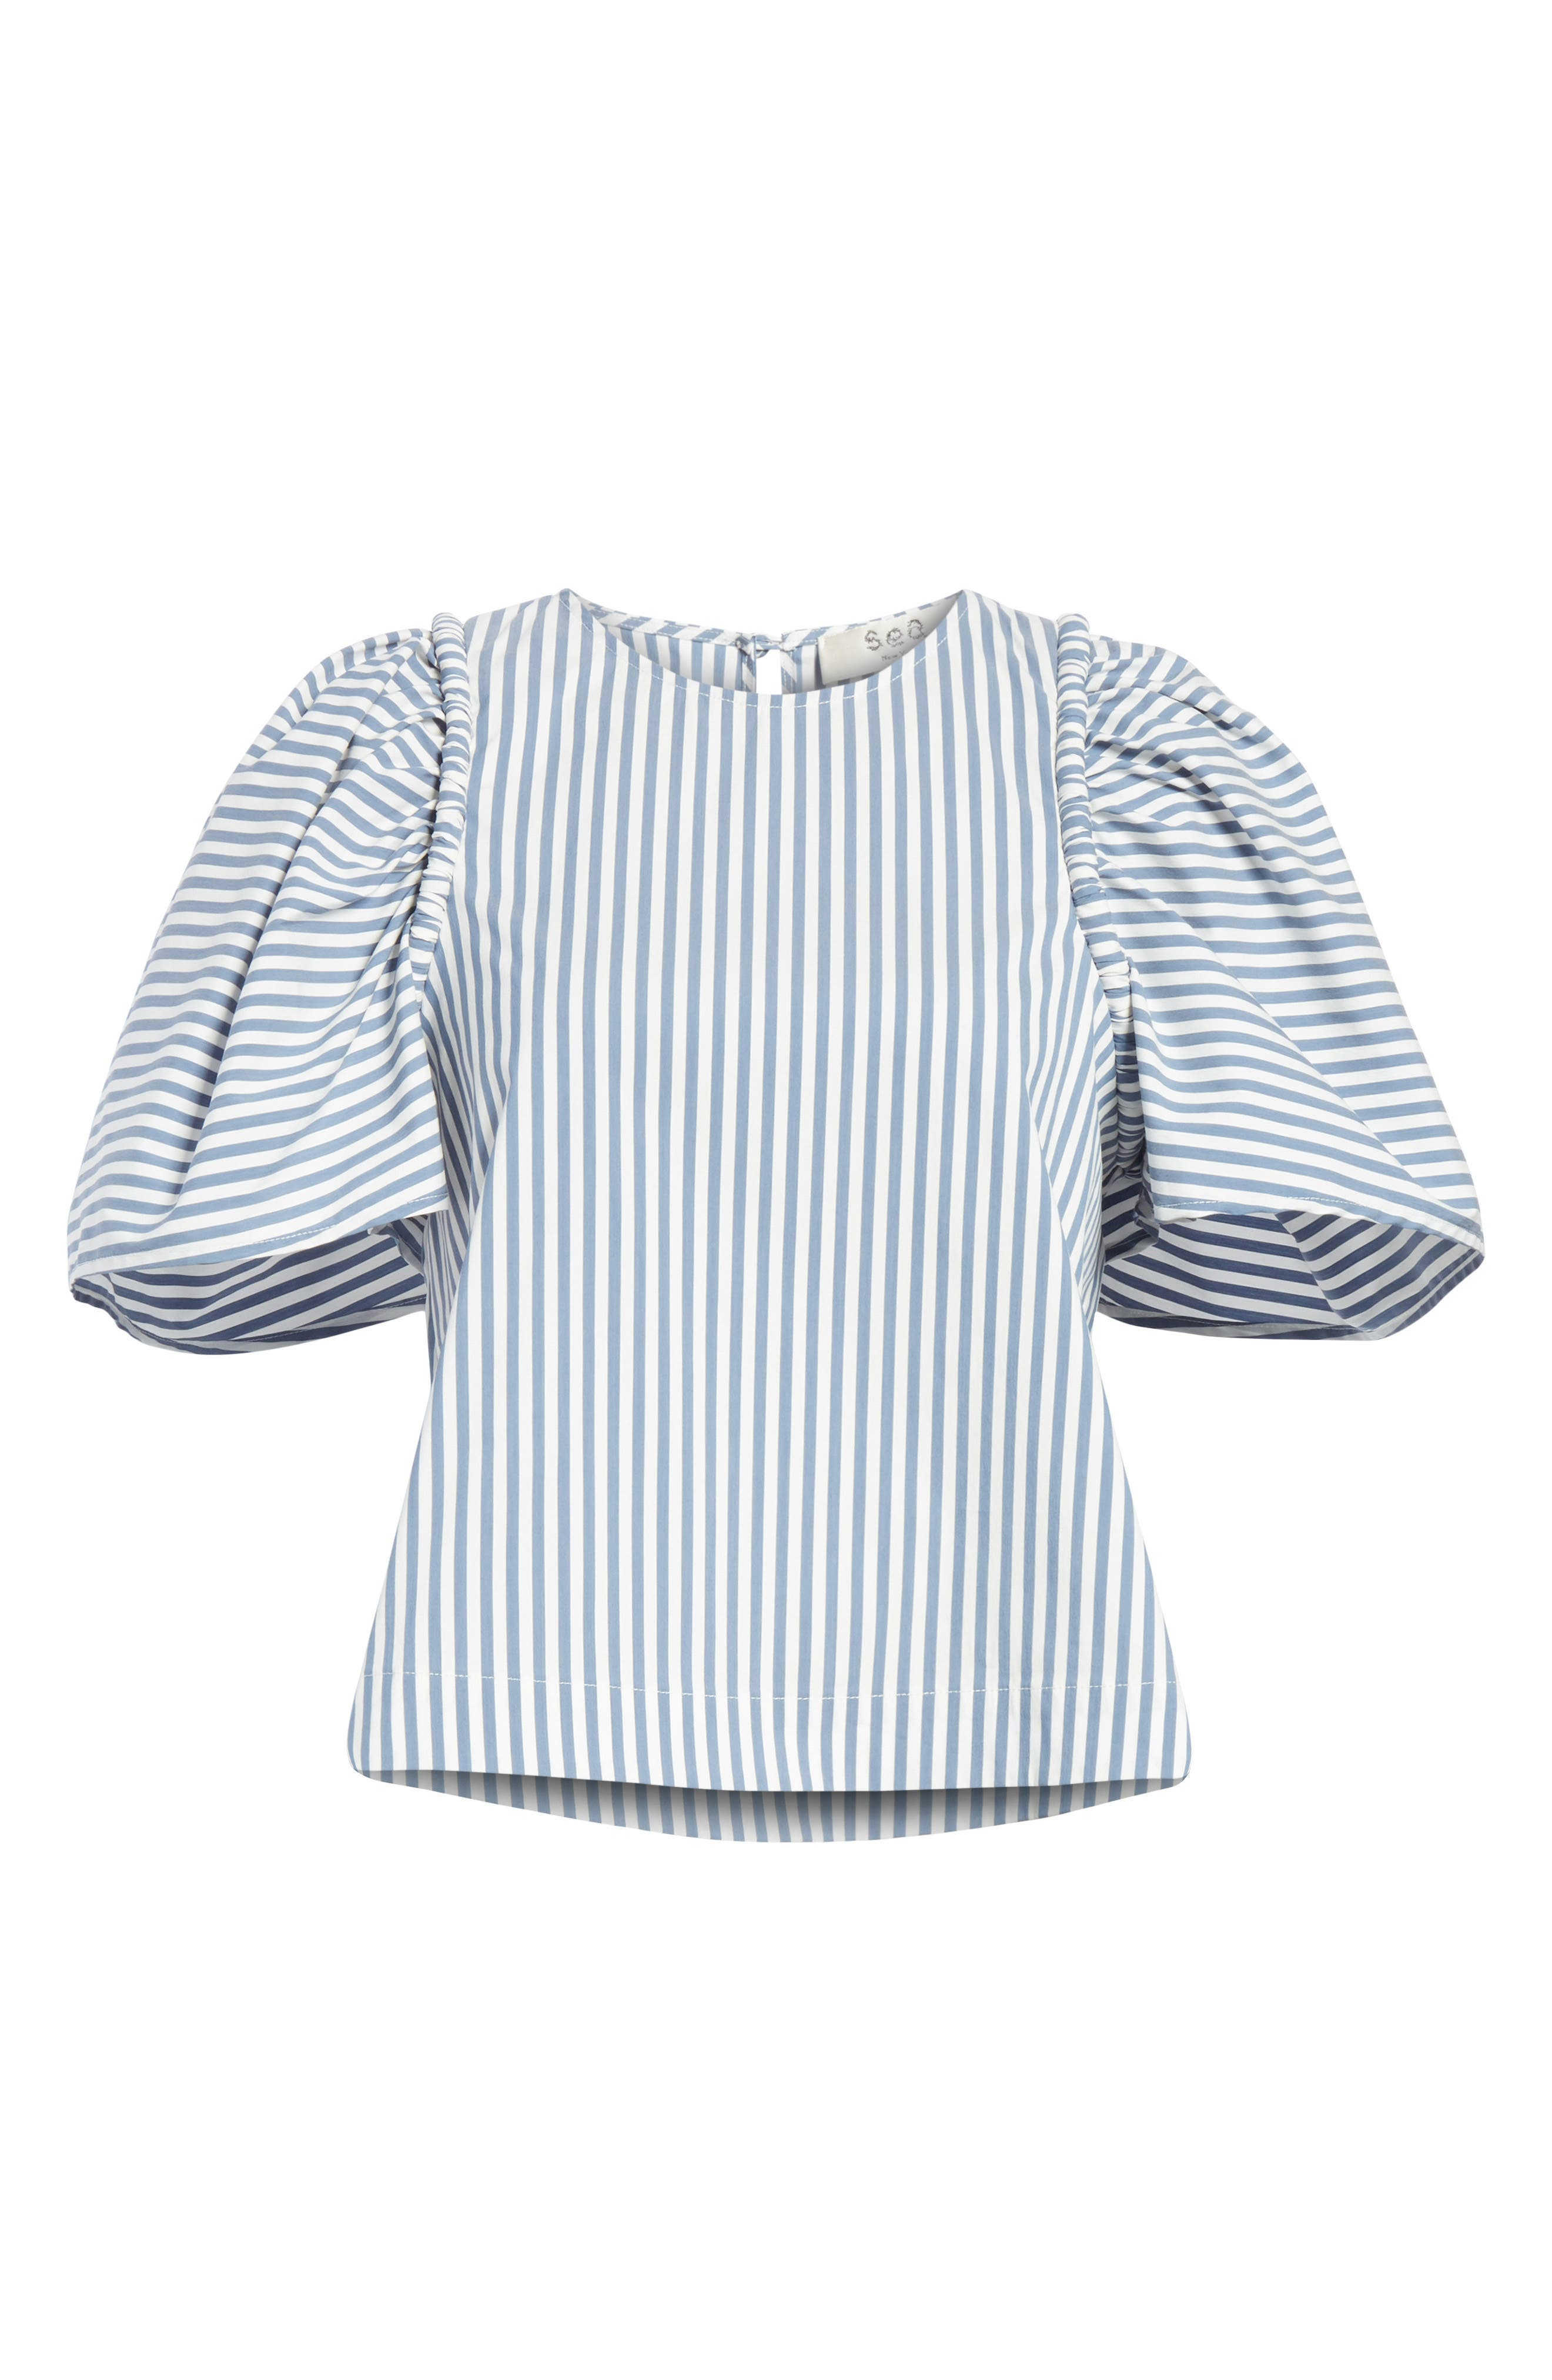 Riviera Corded Puff Sleeve Blouse,                             Alternate thumbnail 6, color,                             105